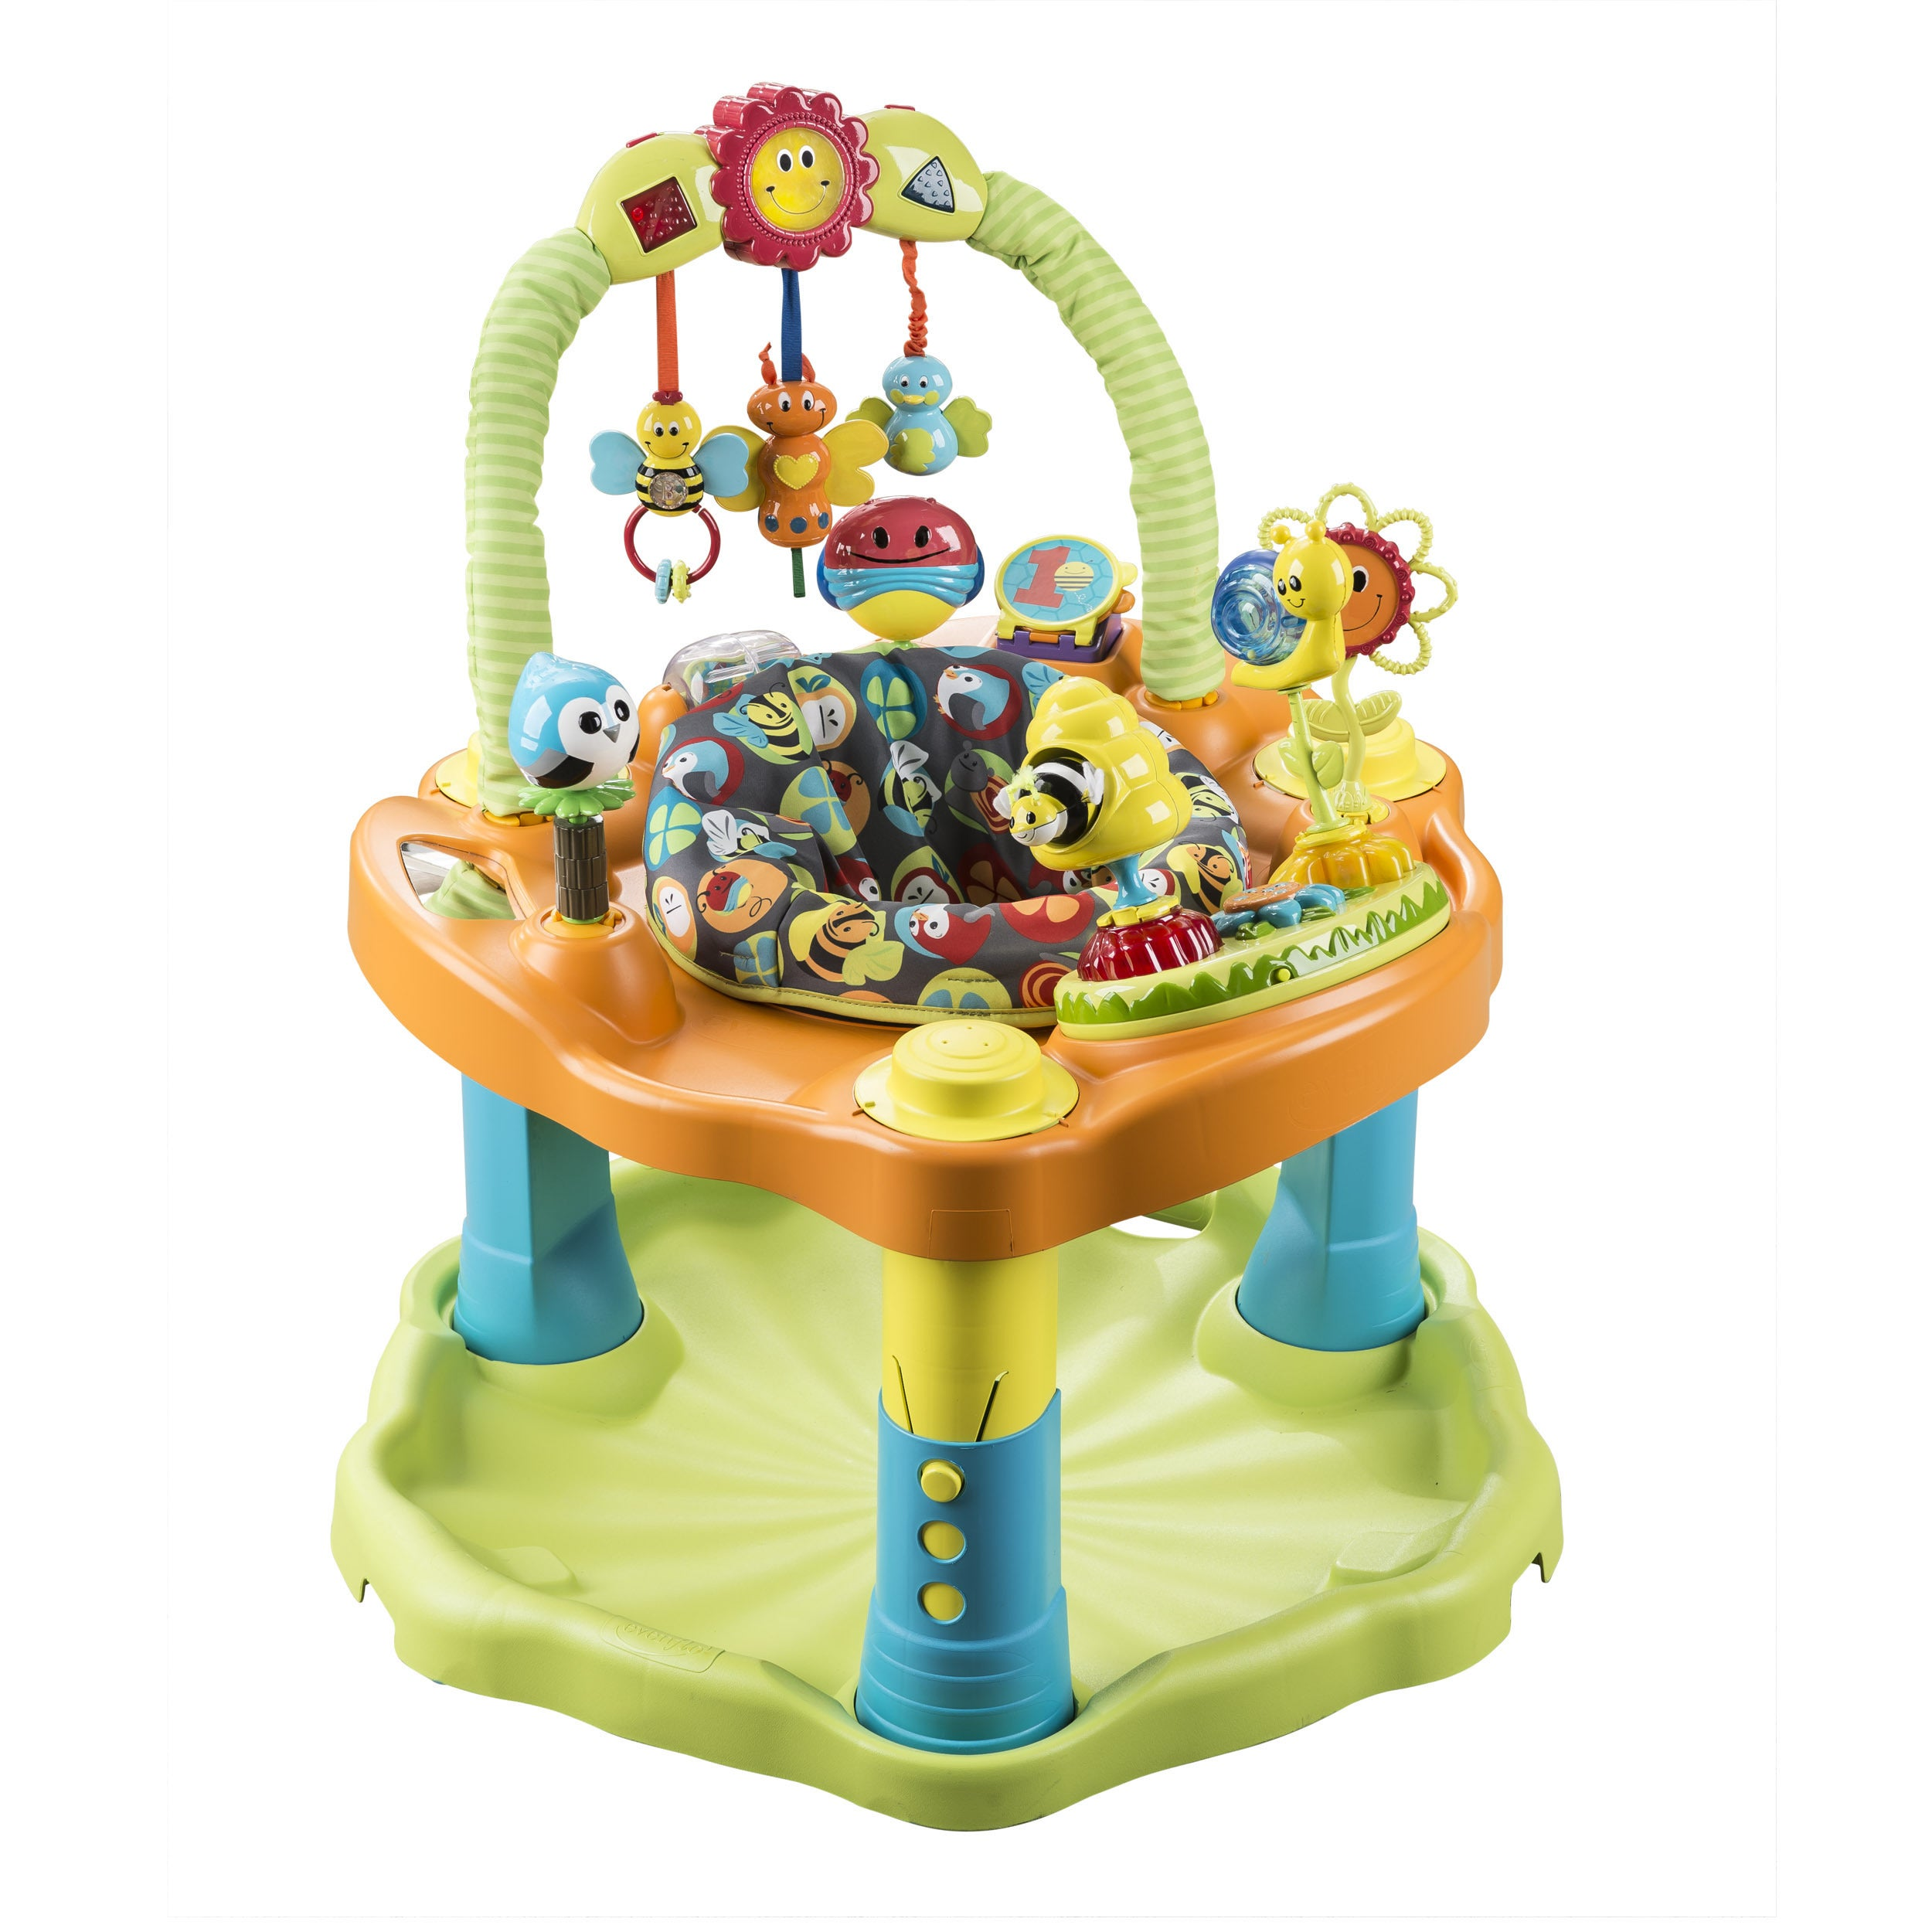 Evenflo Bumbly ExerSaucer Double Fun Saucer (Bumbly), Gre...